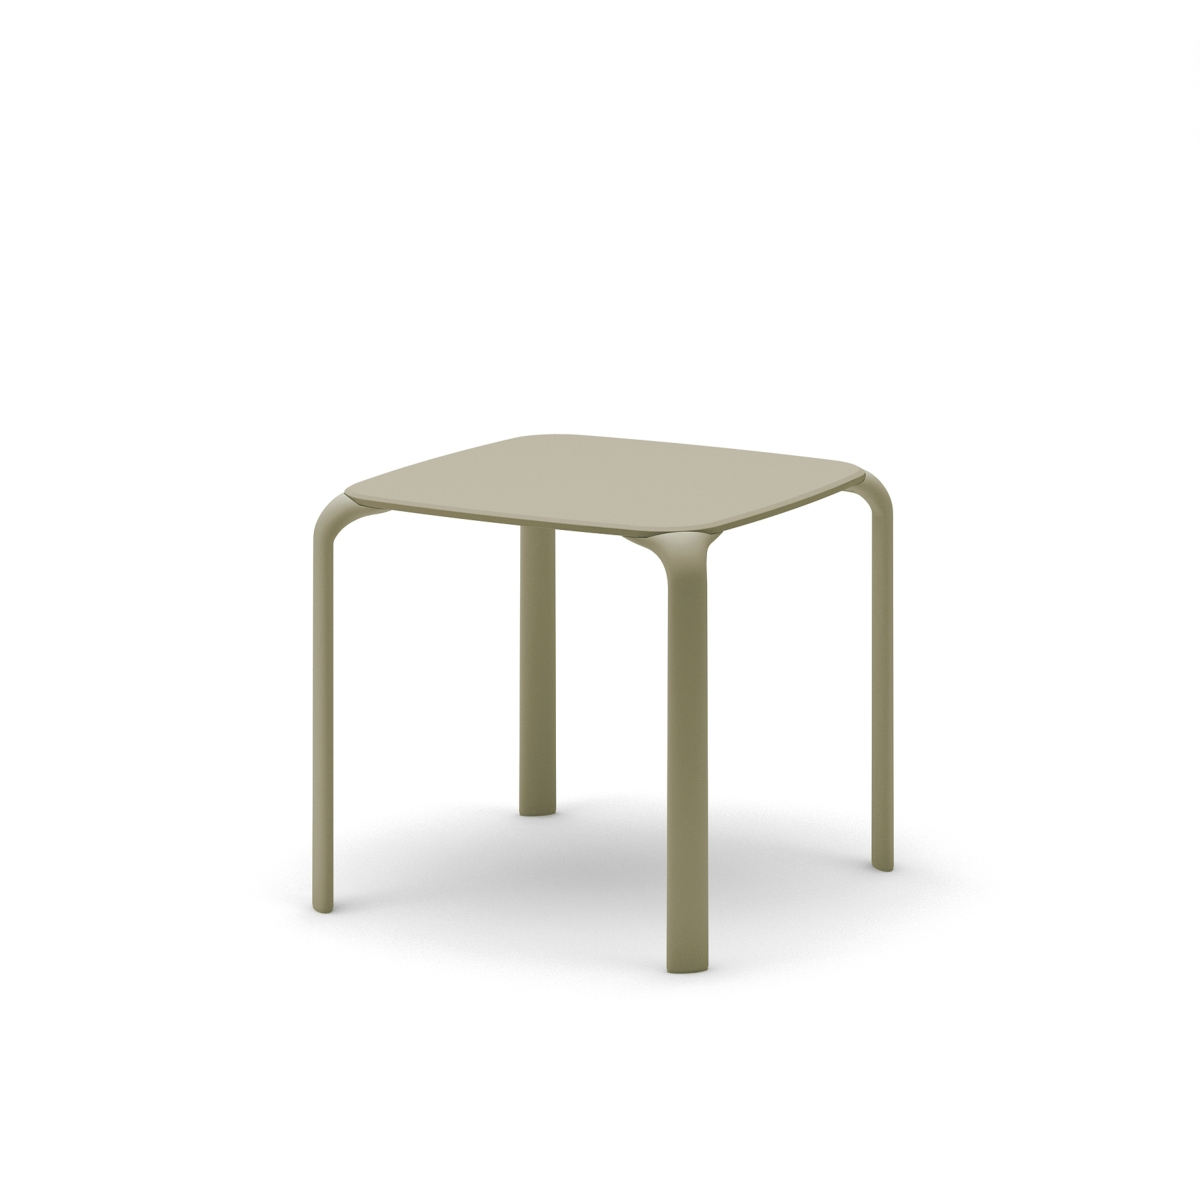 Infiniti design, table Goutte